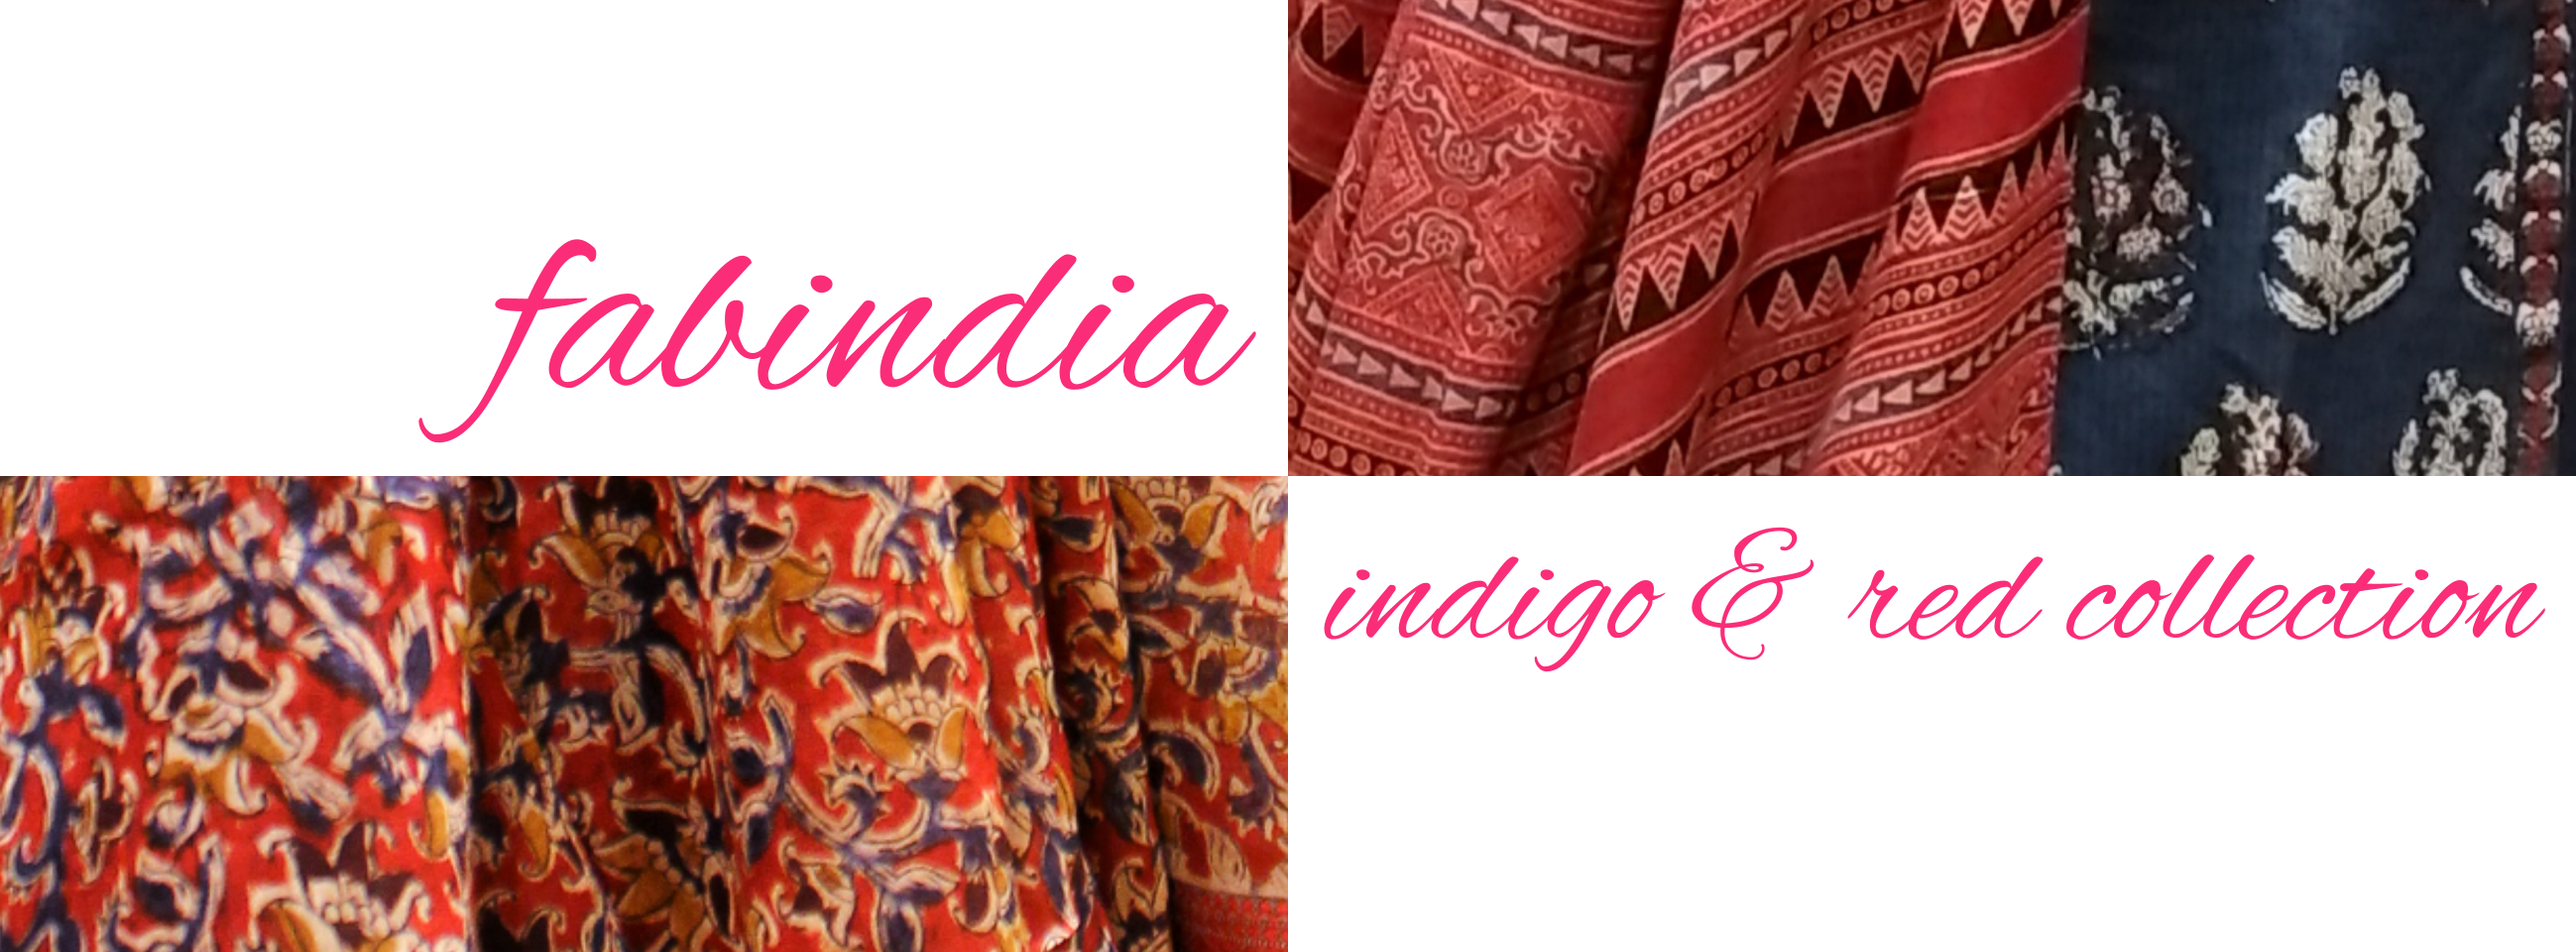 FabIndia: Indigo and Red collection image